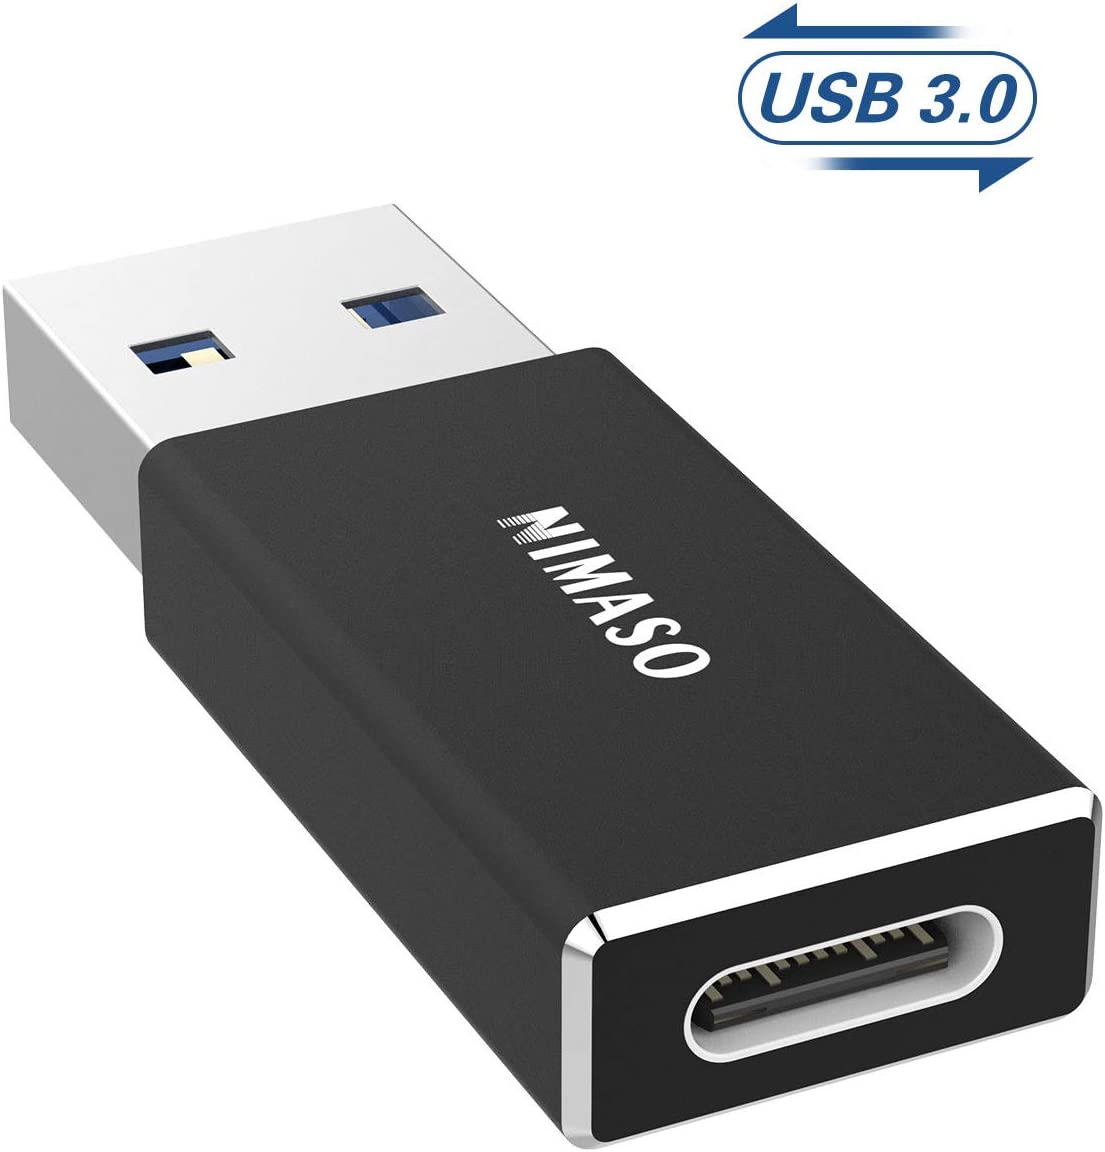 NIMASO USB C to USB 3.0 Adapter, USB C Female to USB A Male Connector, USB C 3.1 gen 1 (USB 3.0) Adapter 5Gbps / 640MBps Work with Laptops, Chargers and More Devices with Standard USB A Interface